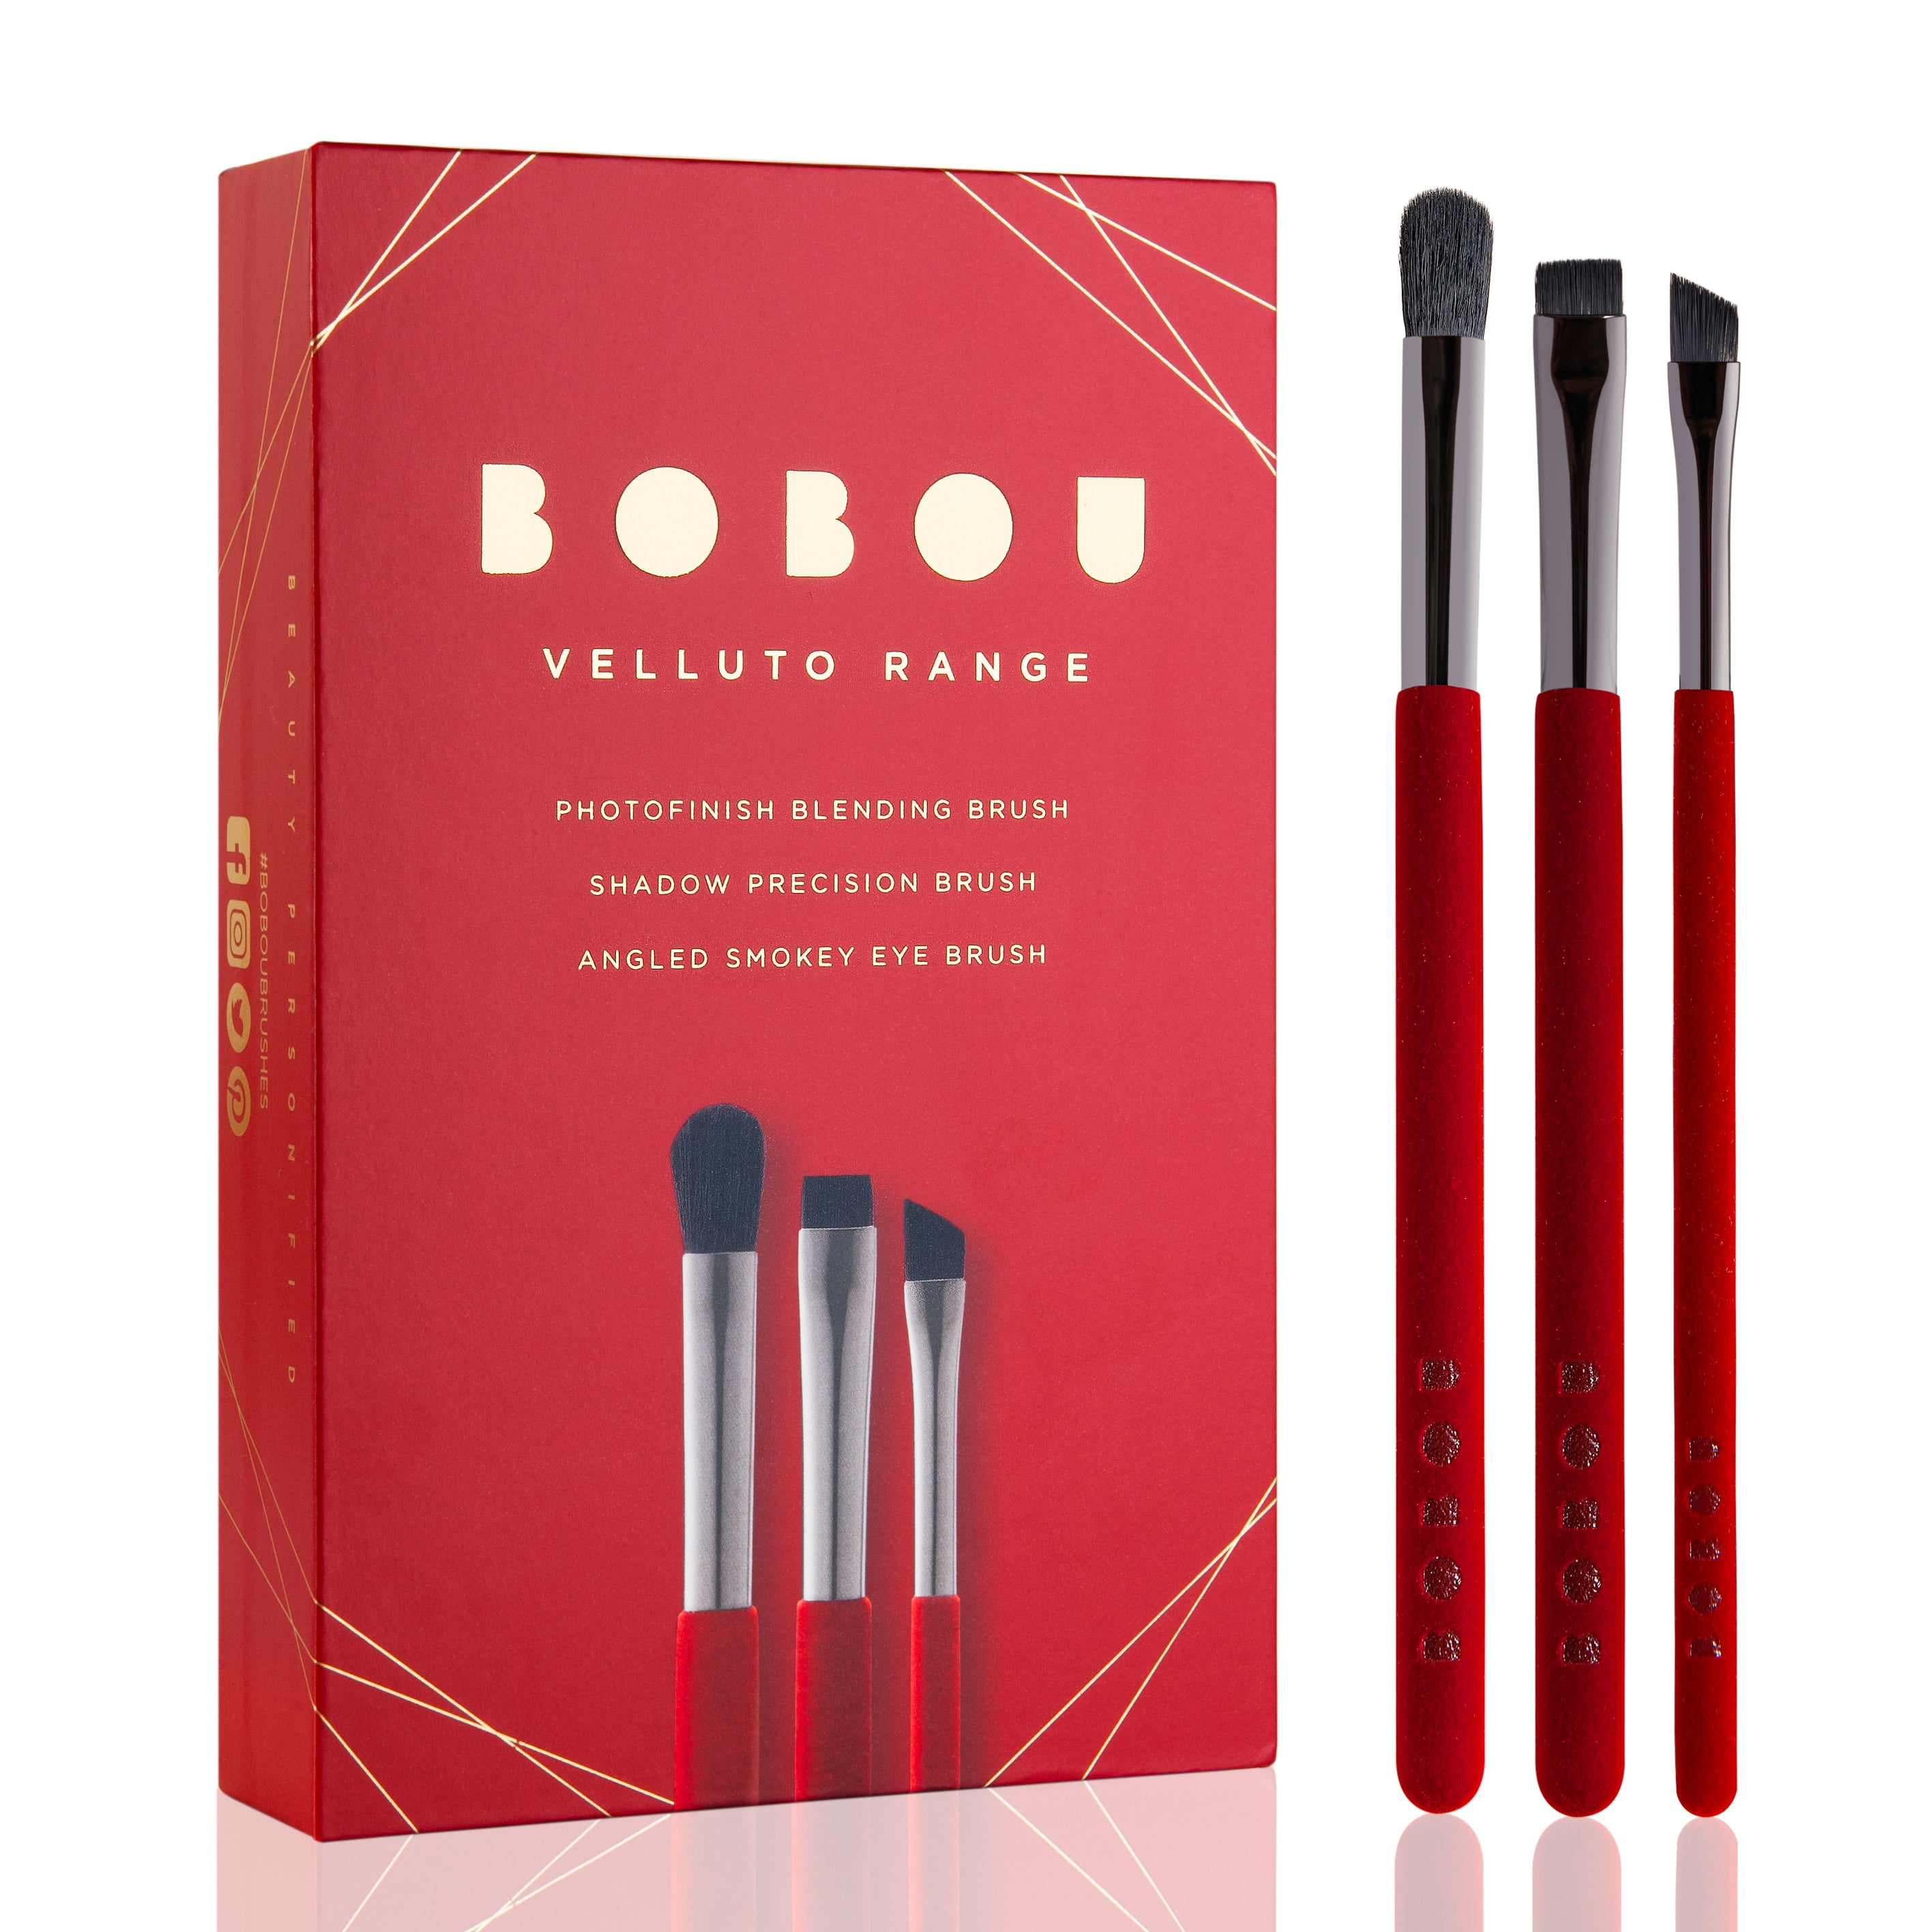 VELLUTO™ RANGE PROFESSIONAL LUXURY EYE MAKEUP BRUSH SET - Boboubeauty